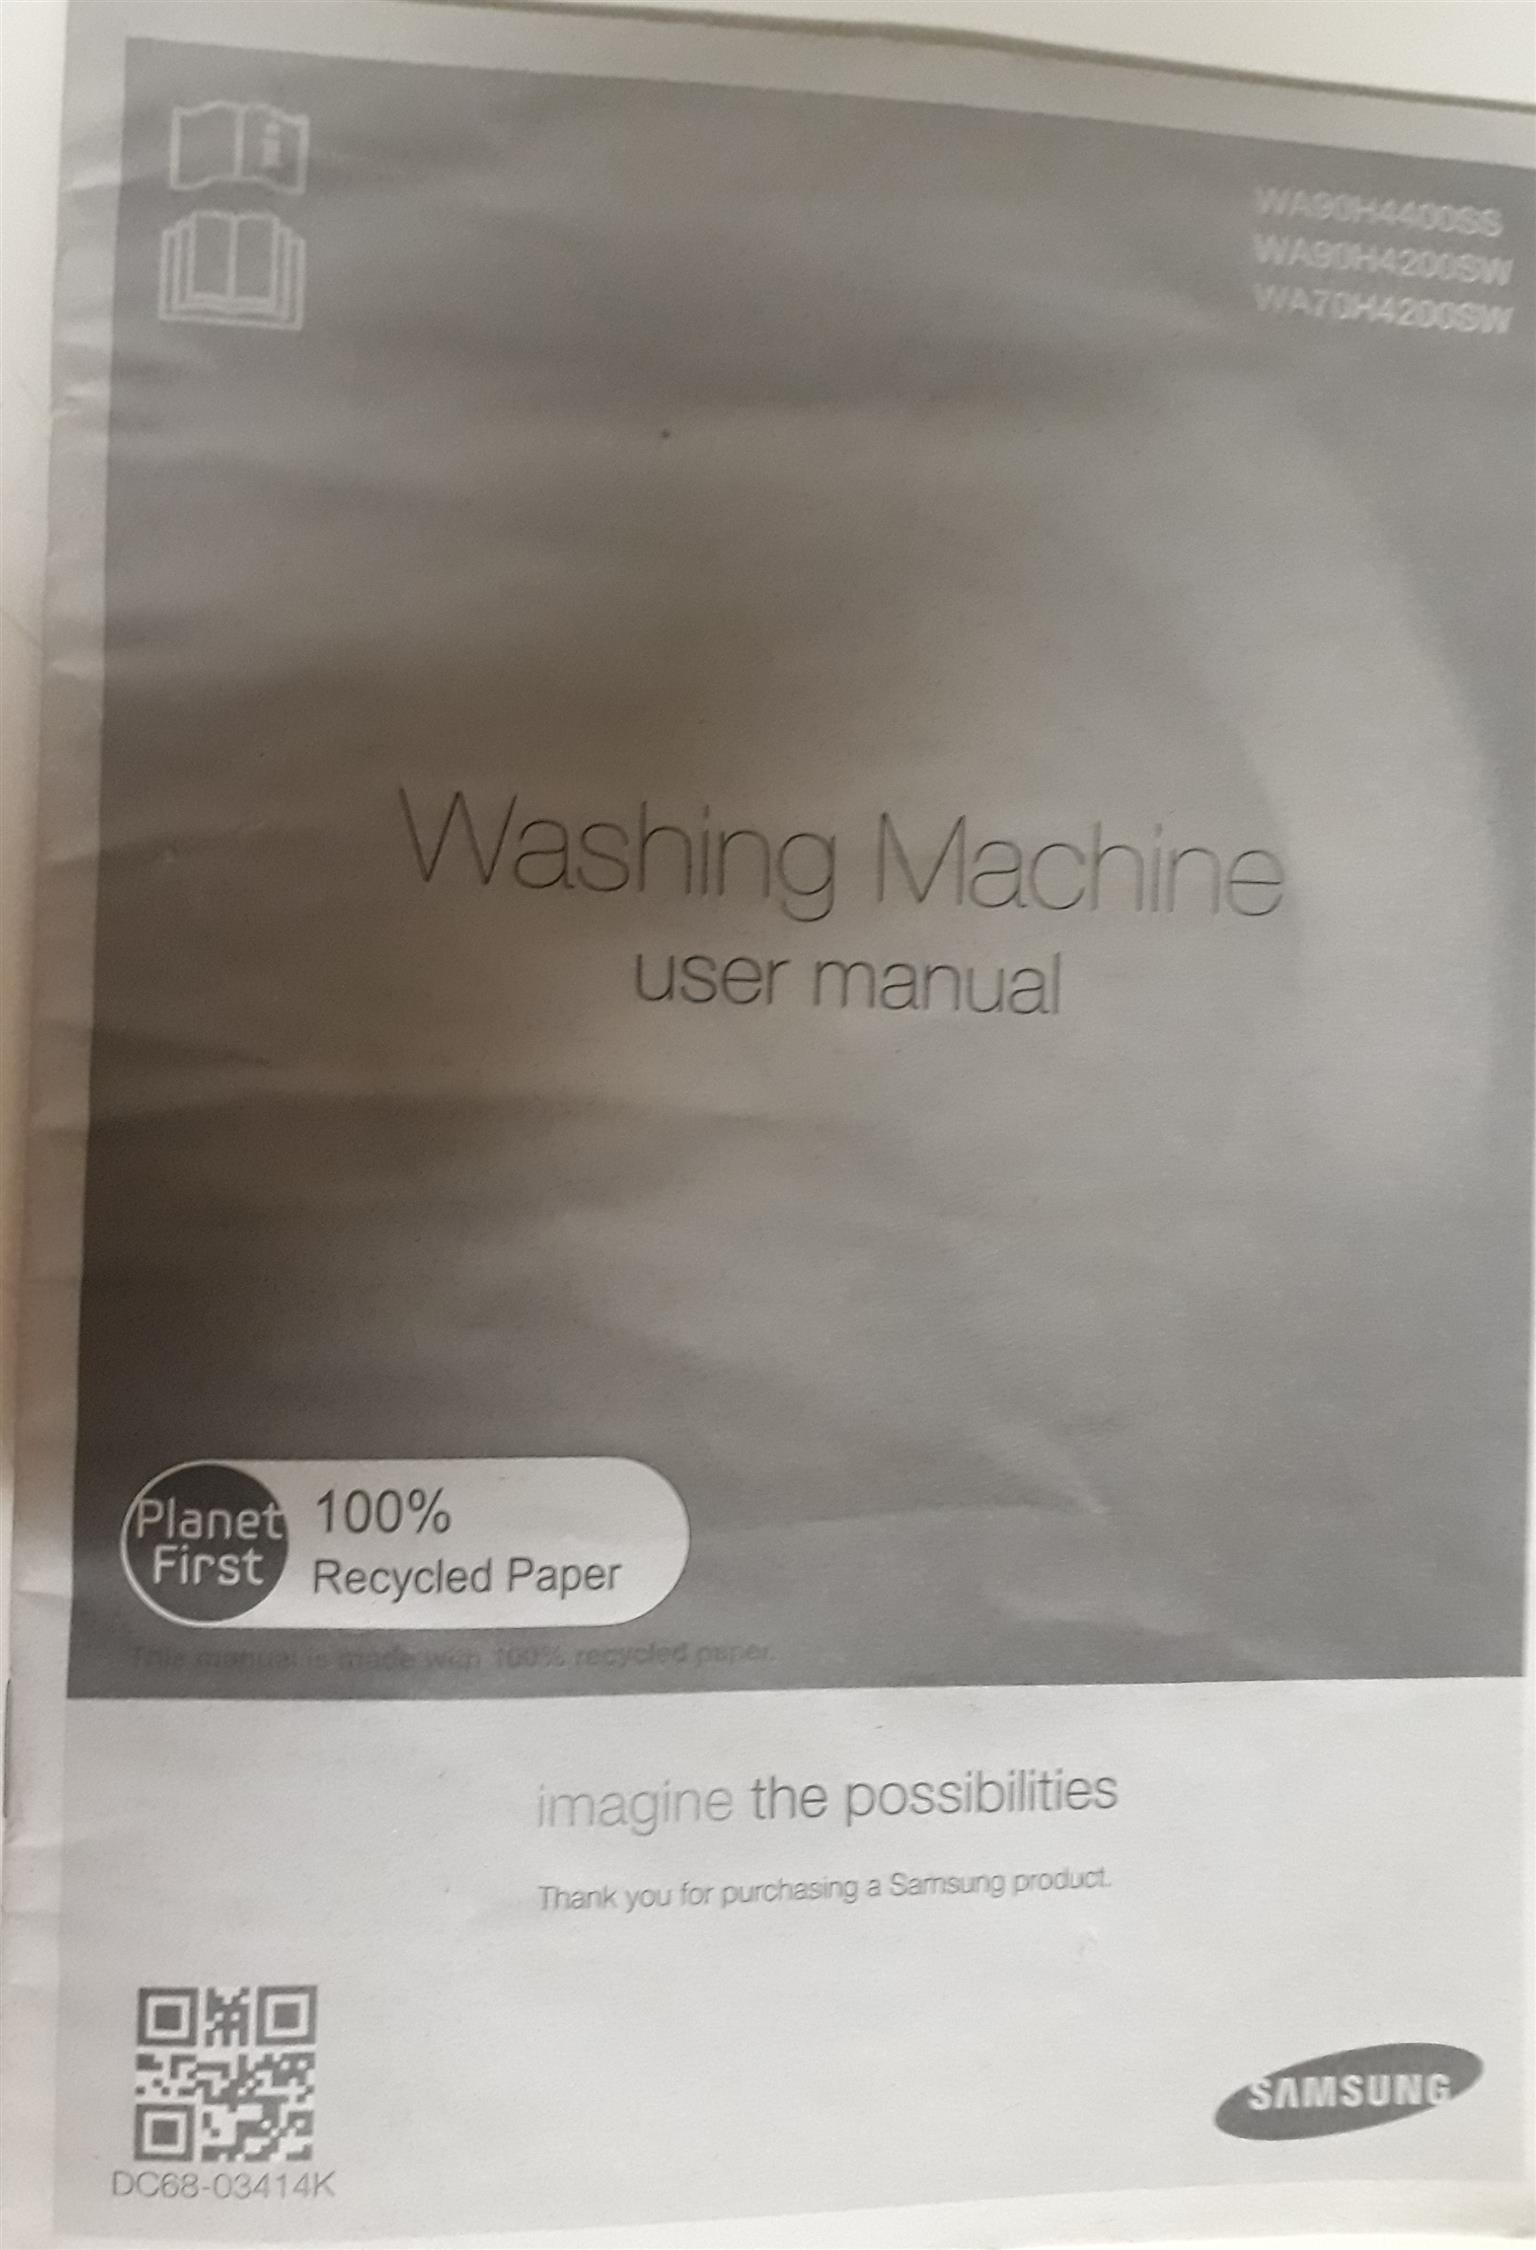 Samsung 13kg Whobble Trchnology Top Loader whashing machine